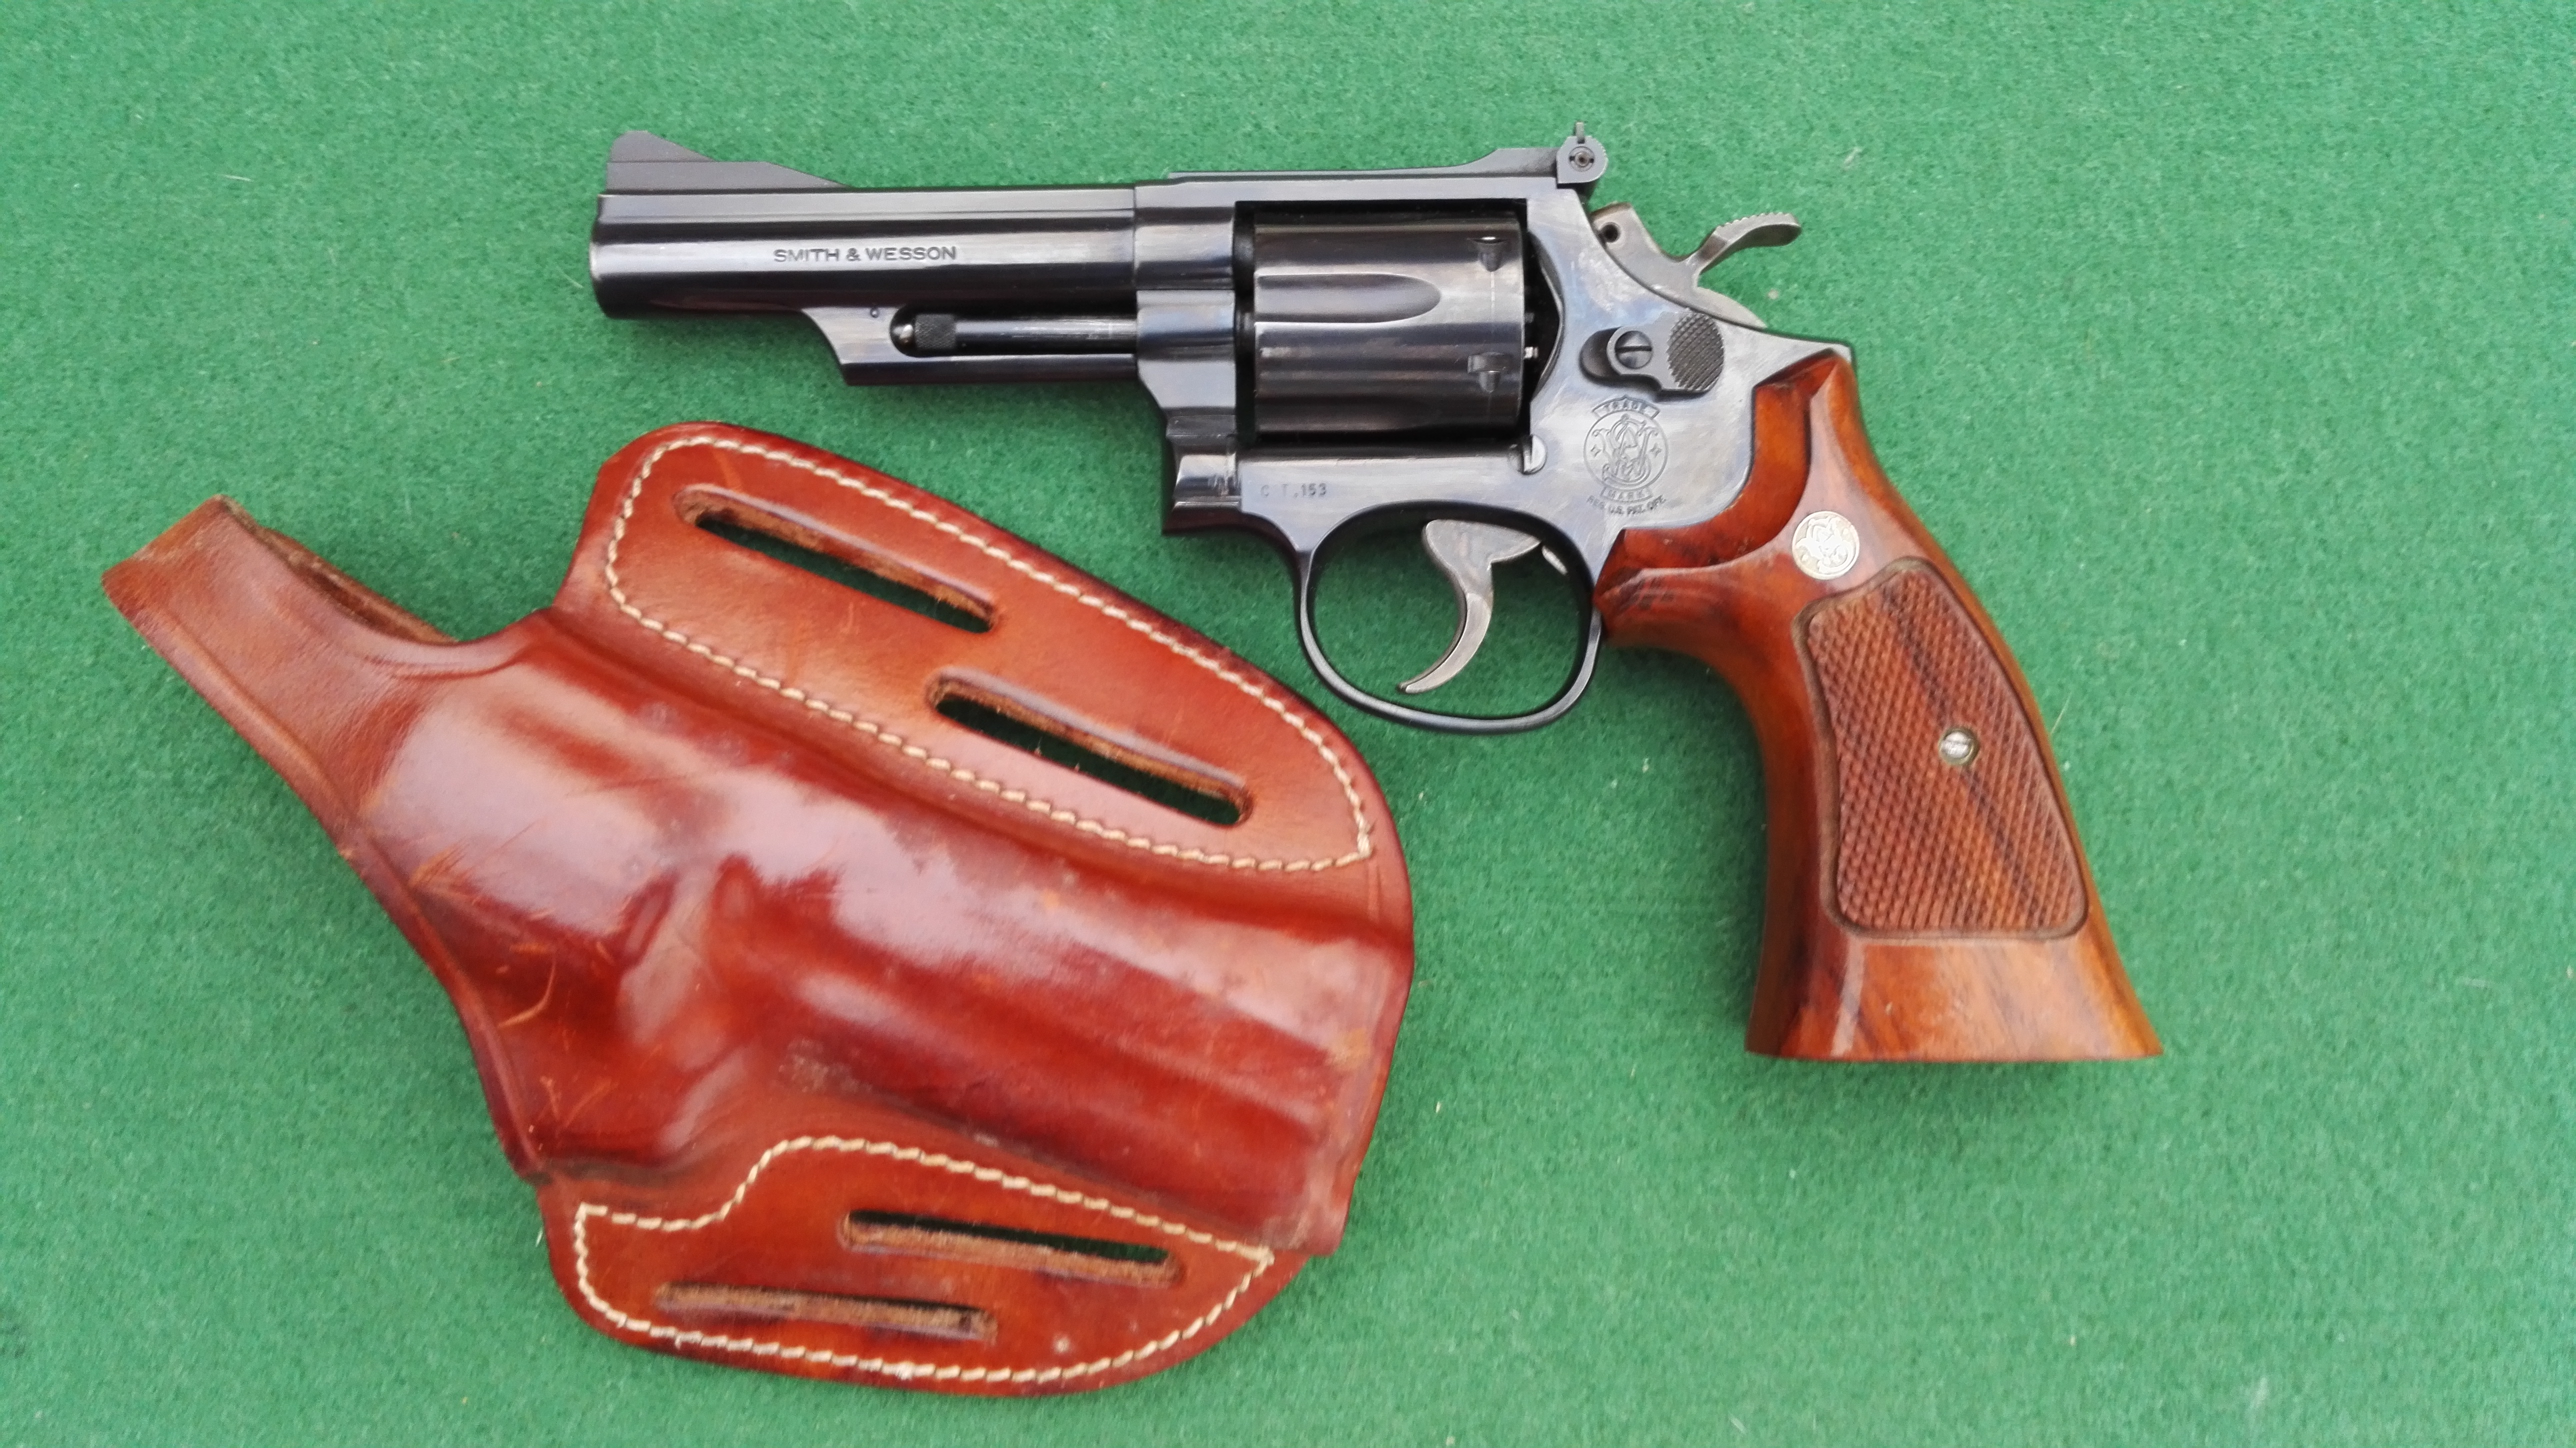 Revolver - marca SMITH & WESSON - modello  	SMITH & WESSON MOD. 19-5 COMBAT MAGNUM - calibro 357MAG 333